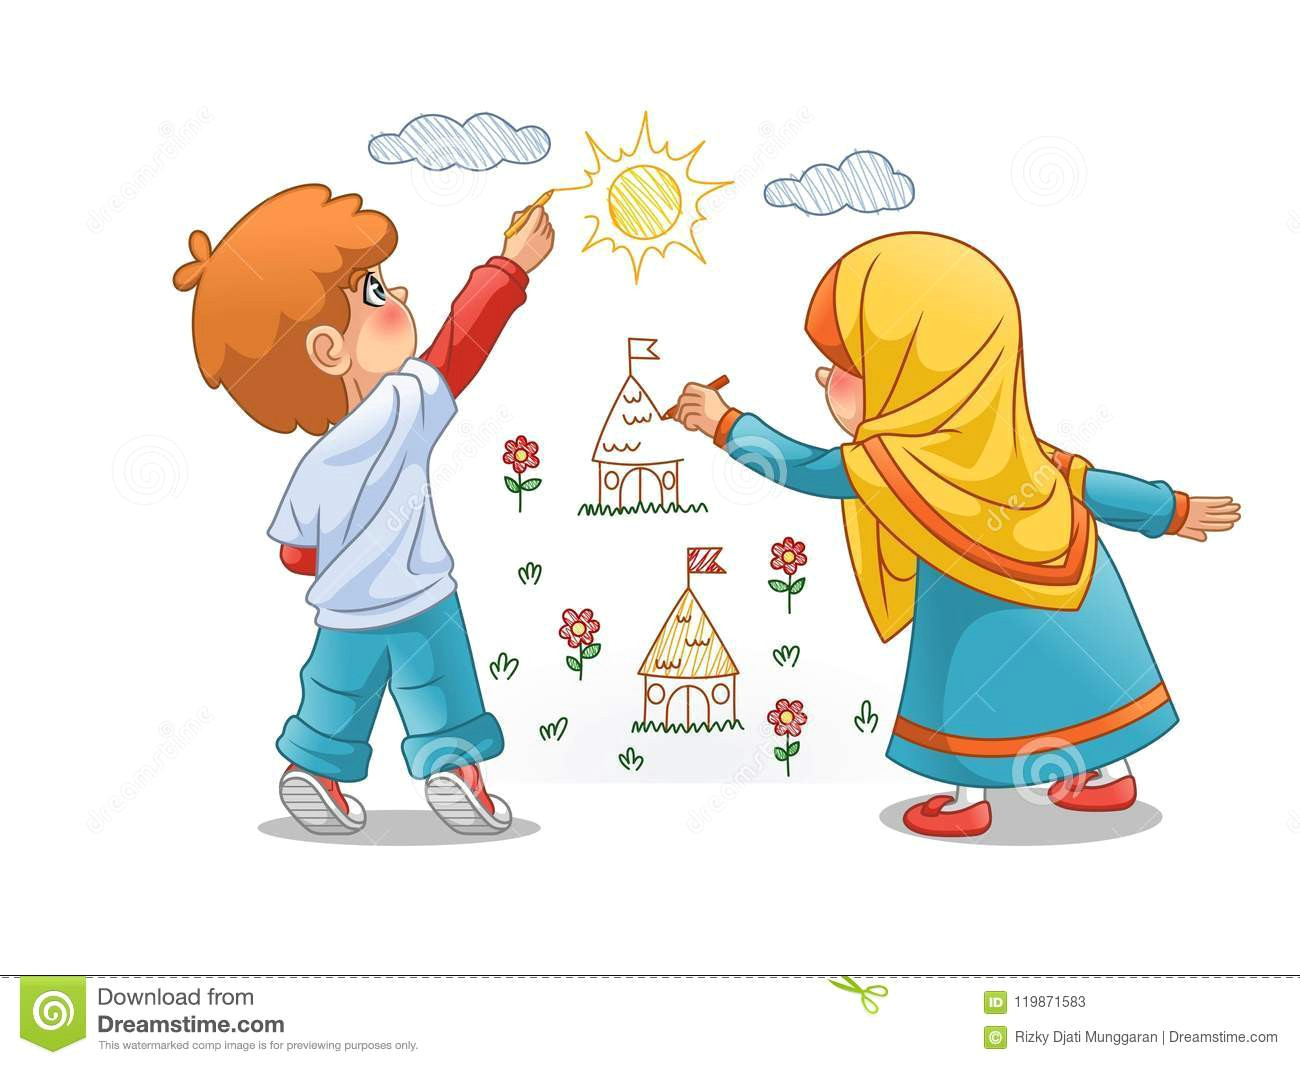 muslim girls and boy draw landscapes on the walls cartoon character design vector illustration isolated against white background